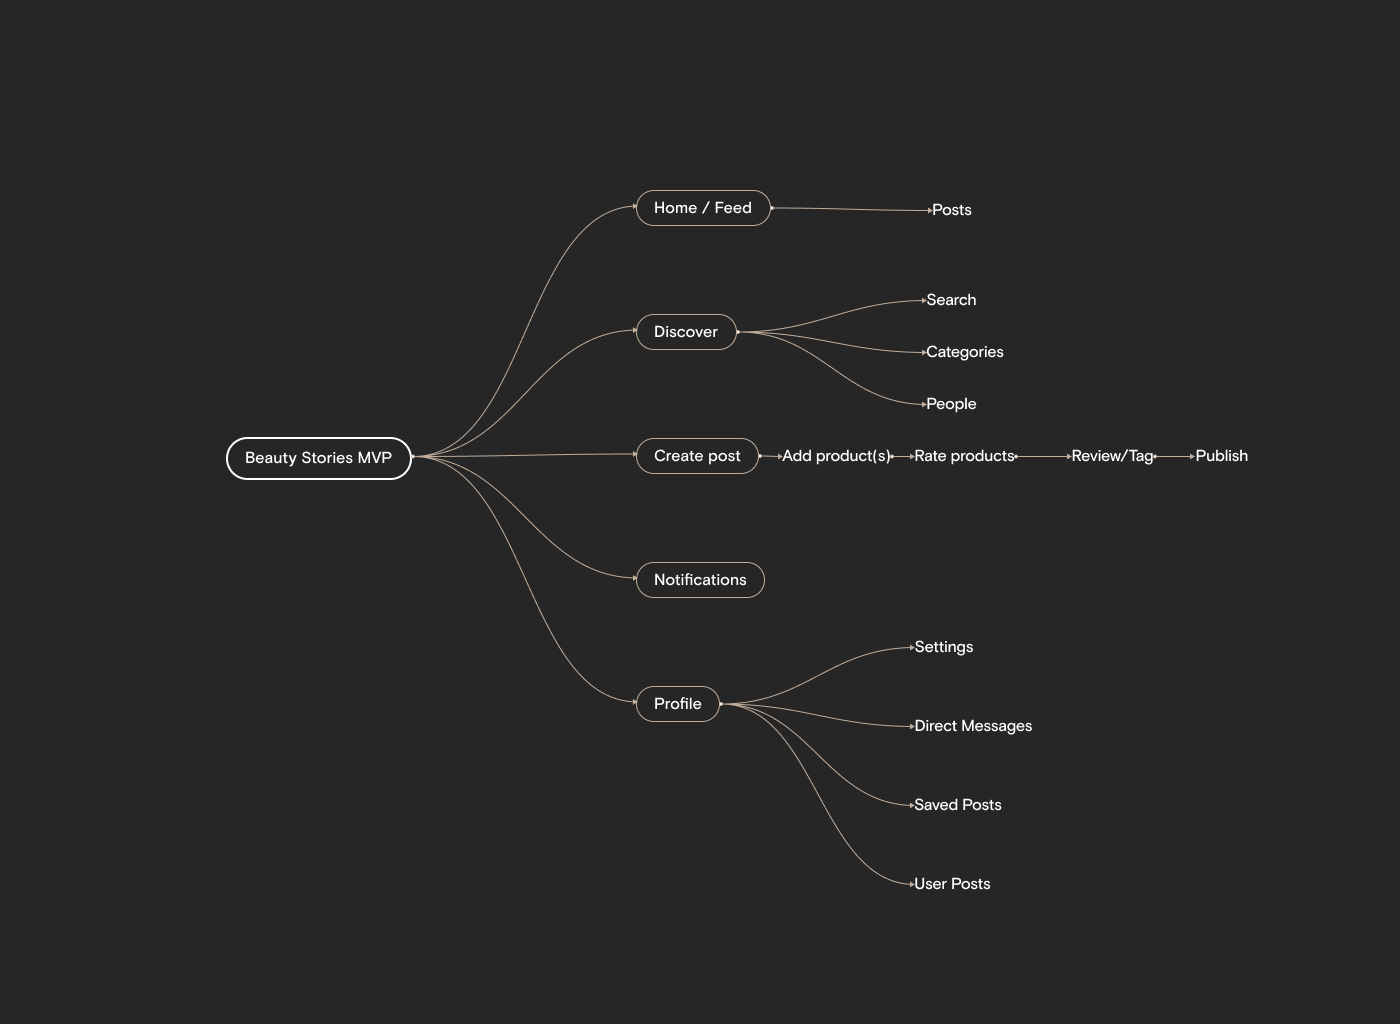 Global User Flow of the application